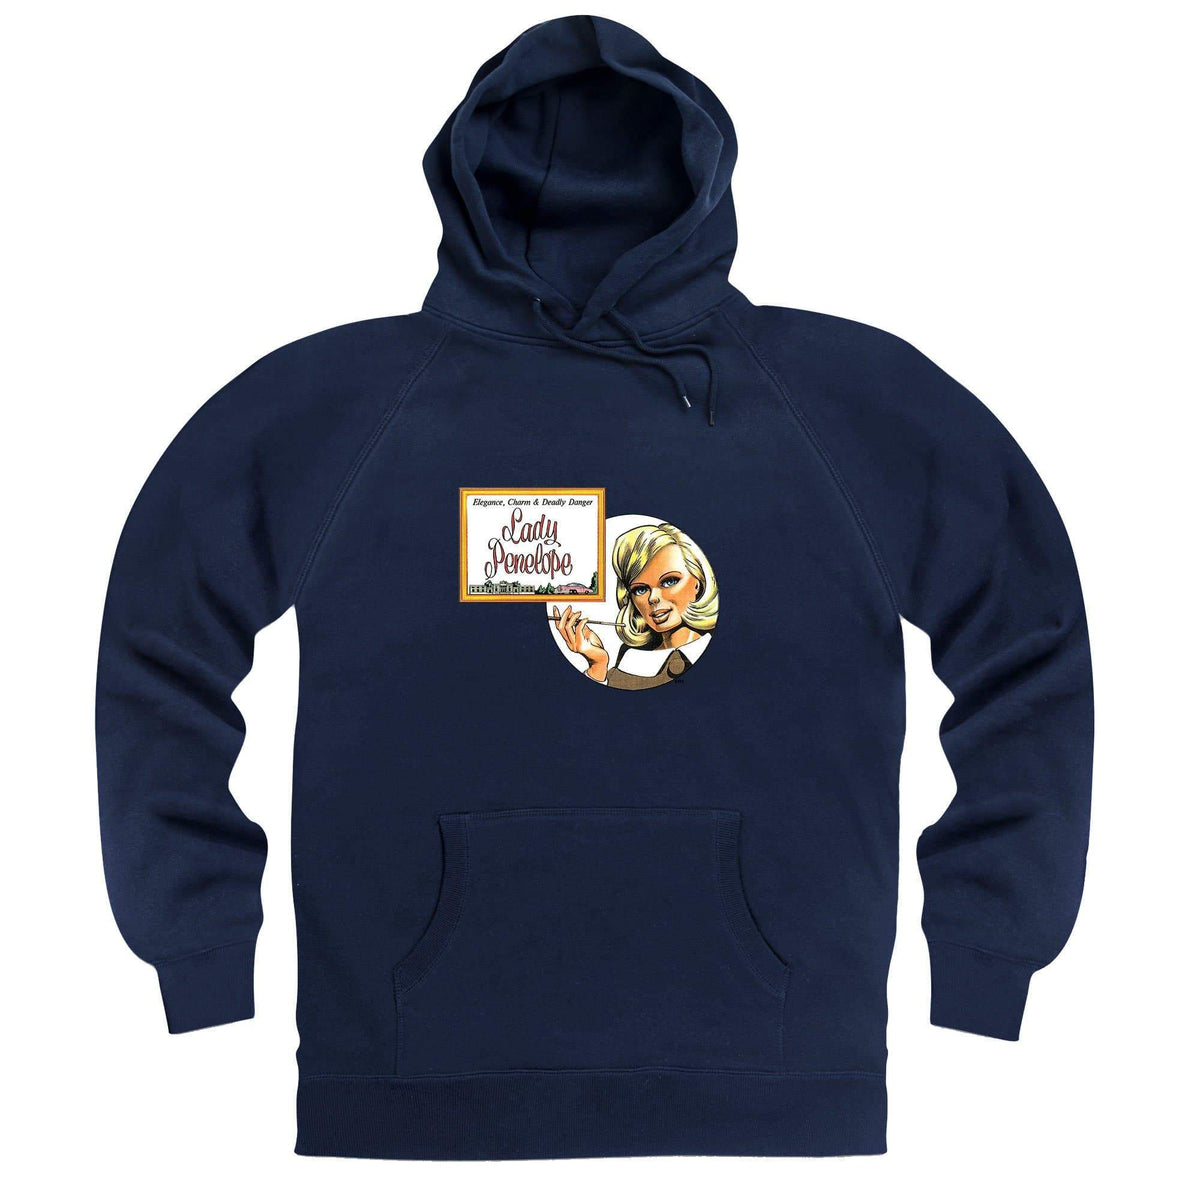 Thunderbirds Lady Penelope Hoodie [Official & Exclusive] - The Gerry Anderson Store